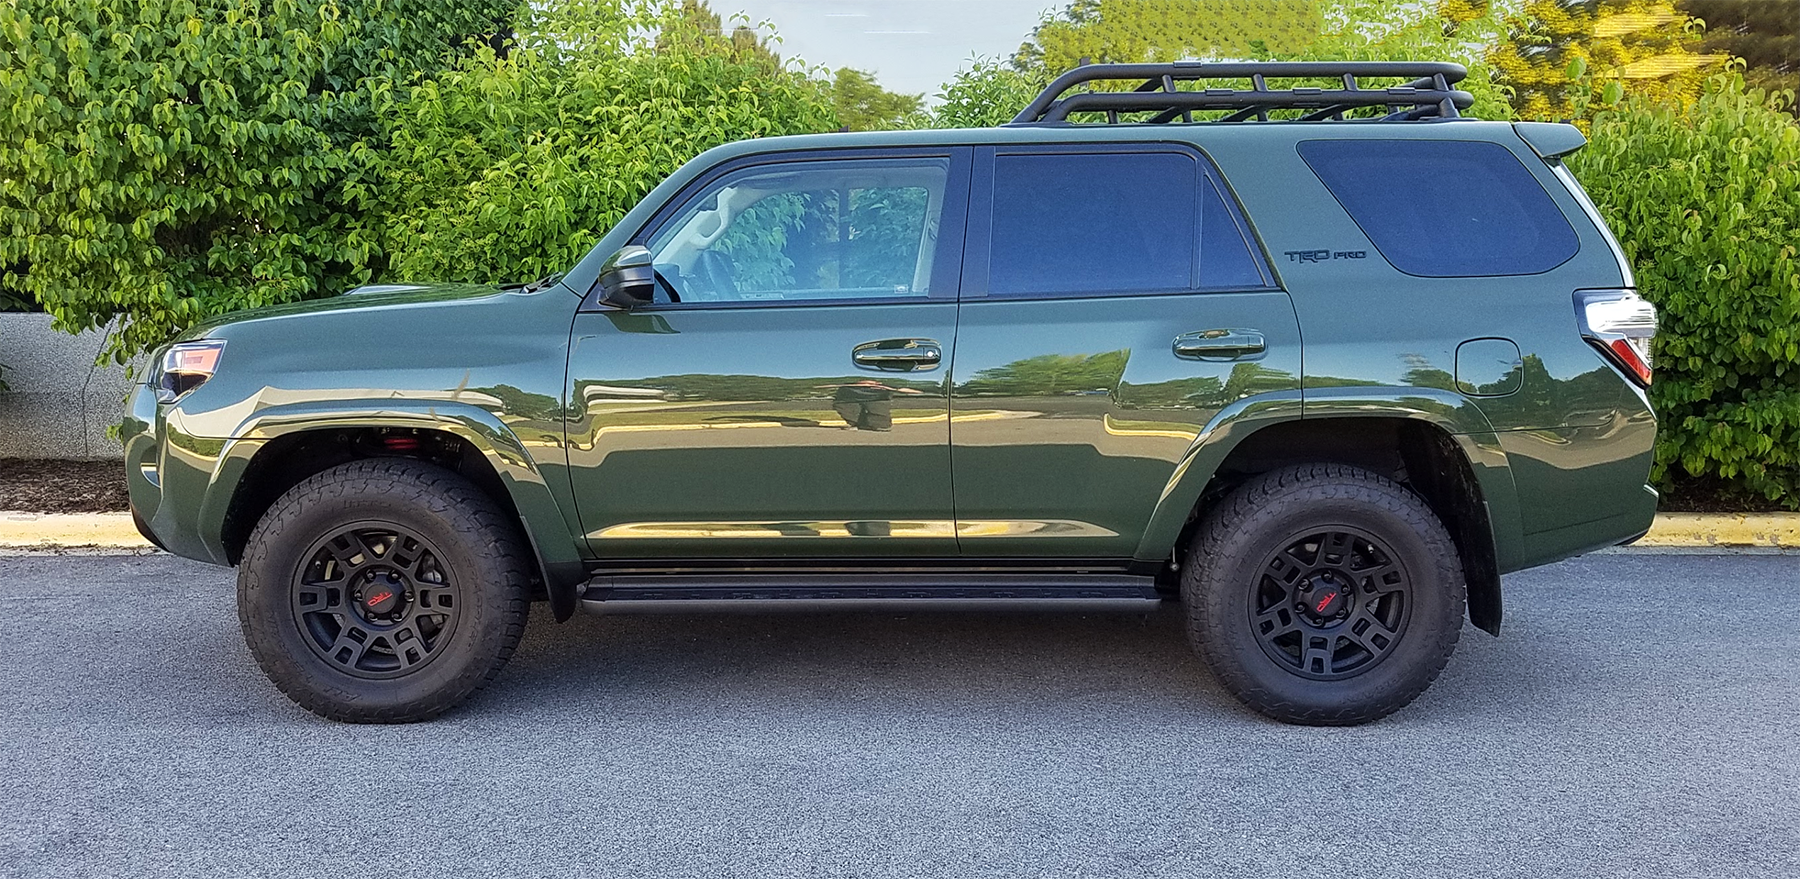 Test Drive 2020 Toyota 4runner Trd Pro The Daily Drive Consumer Guide The Daily Drive Consumer Guide